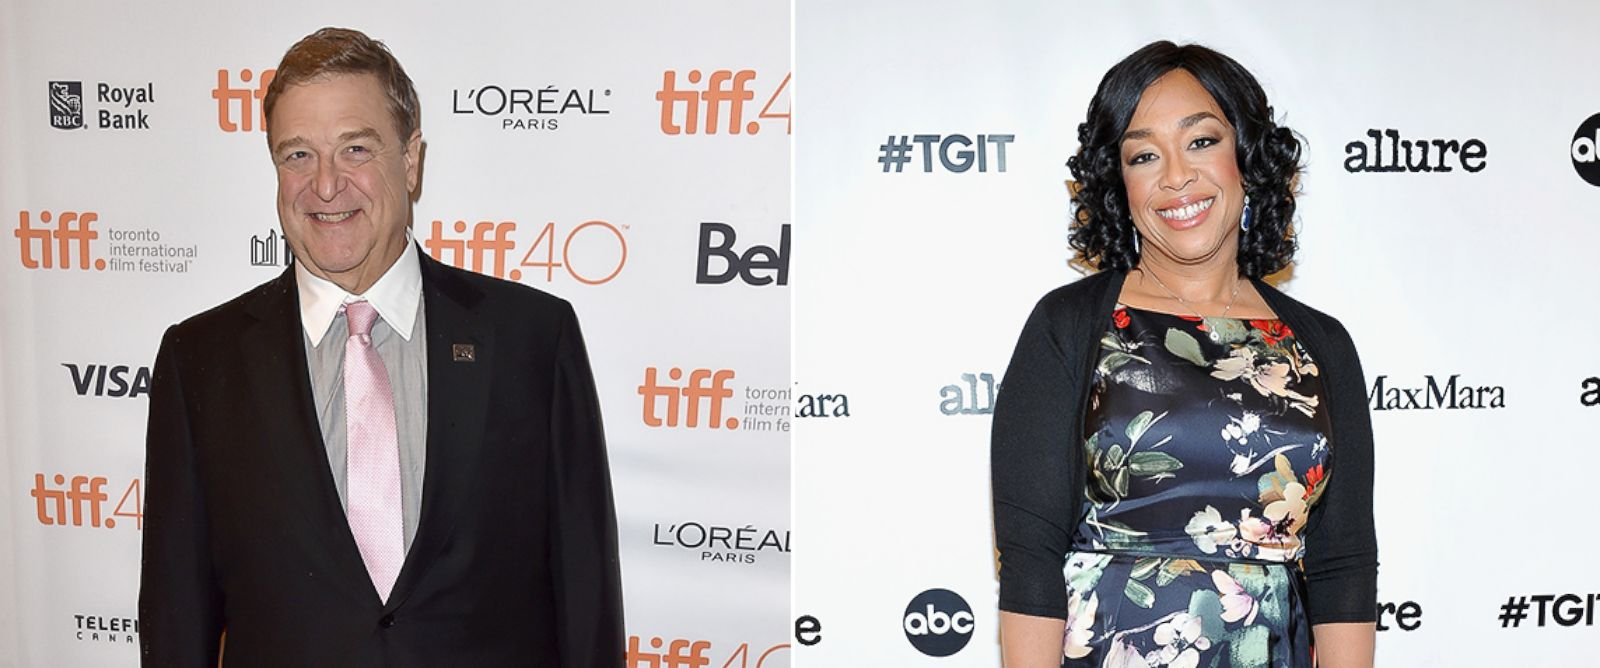 PHOTO: John Goodman attends the Trumbo premiere during the 2015 Toronto International Film Festival on Sept. 12, 2015 in Toronto. Shonda Rhimes attends MaxMara & Allure Celebrate ABCs #TGIT on Nov. 14, 2015 in Beverly Hills, Calif.